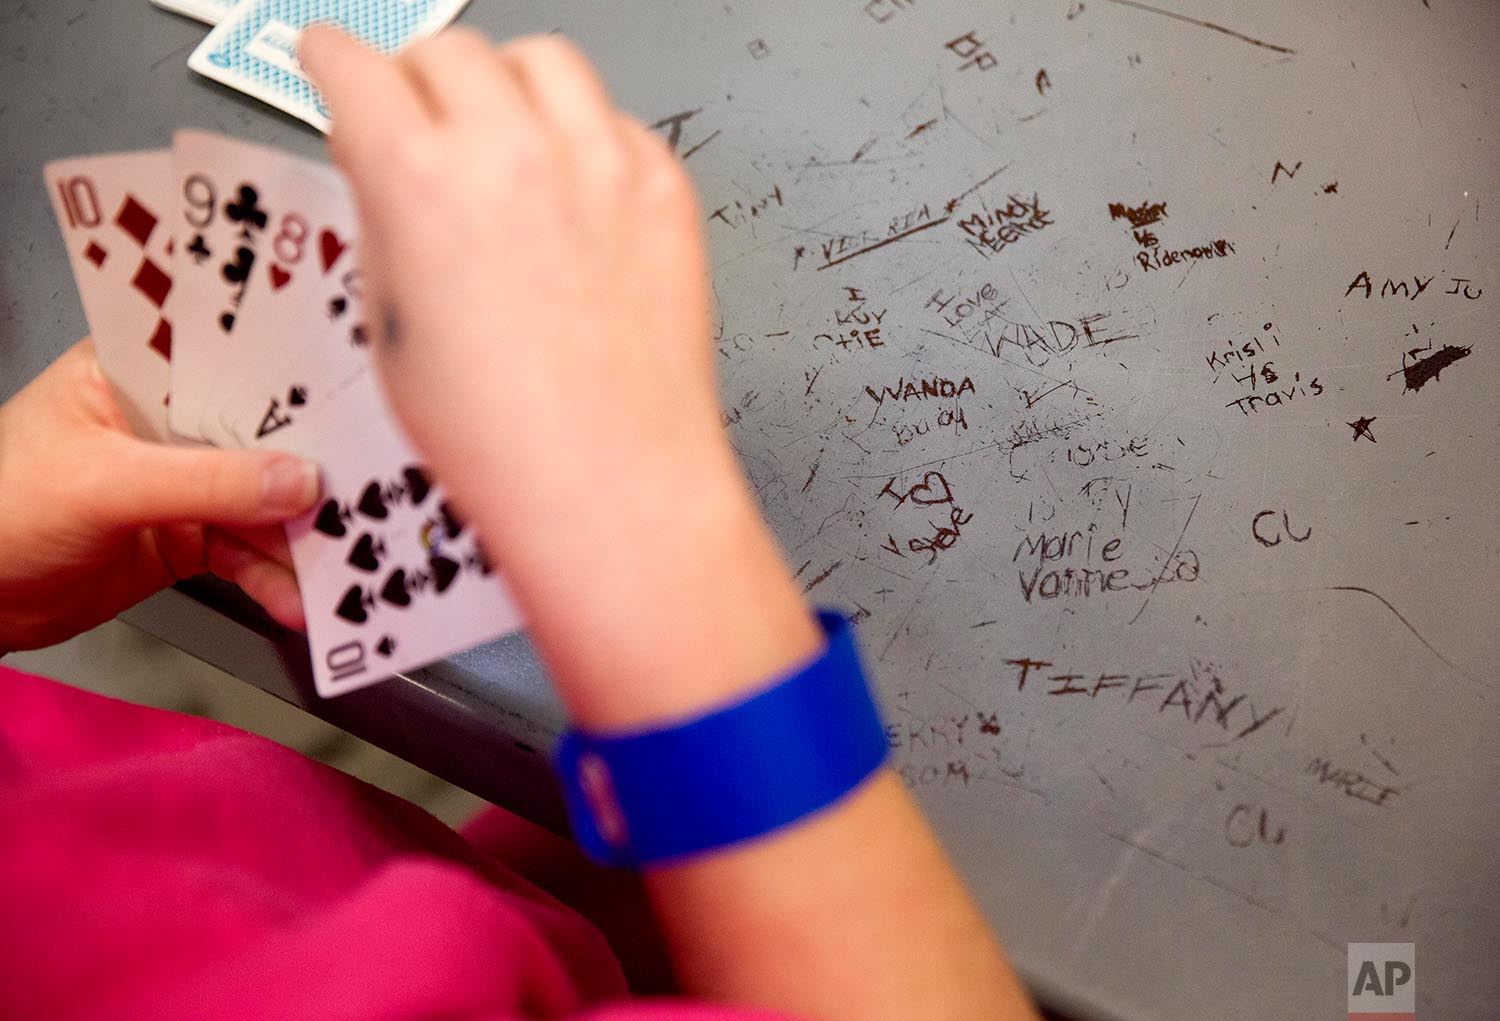 Names are etched in a metal table as inmates play cards in the Campbell County Jail in Jacksboro, Tenn., Thursday, March 15, 2018. (AP Photo/David Goldman)